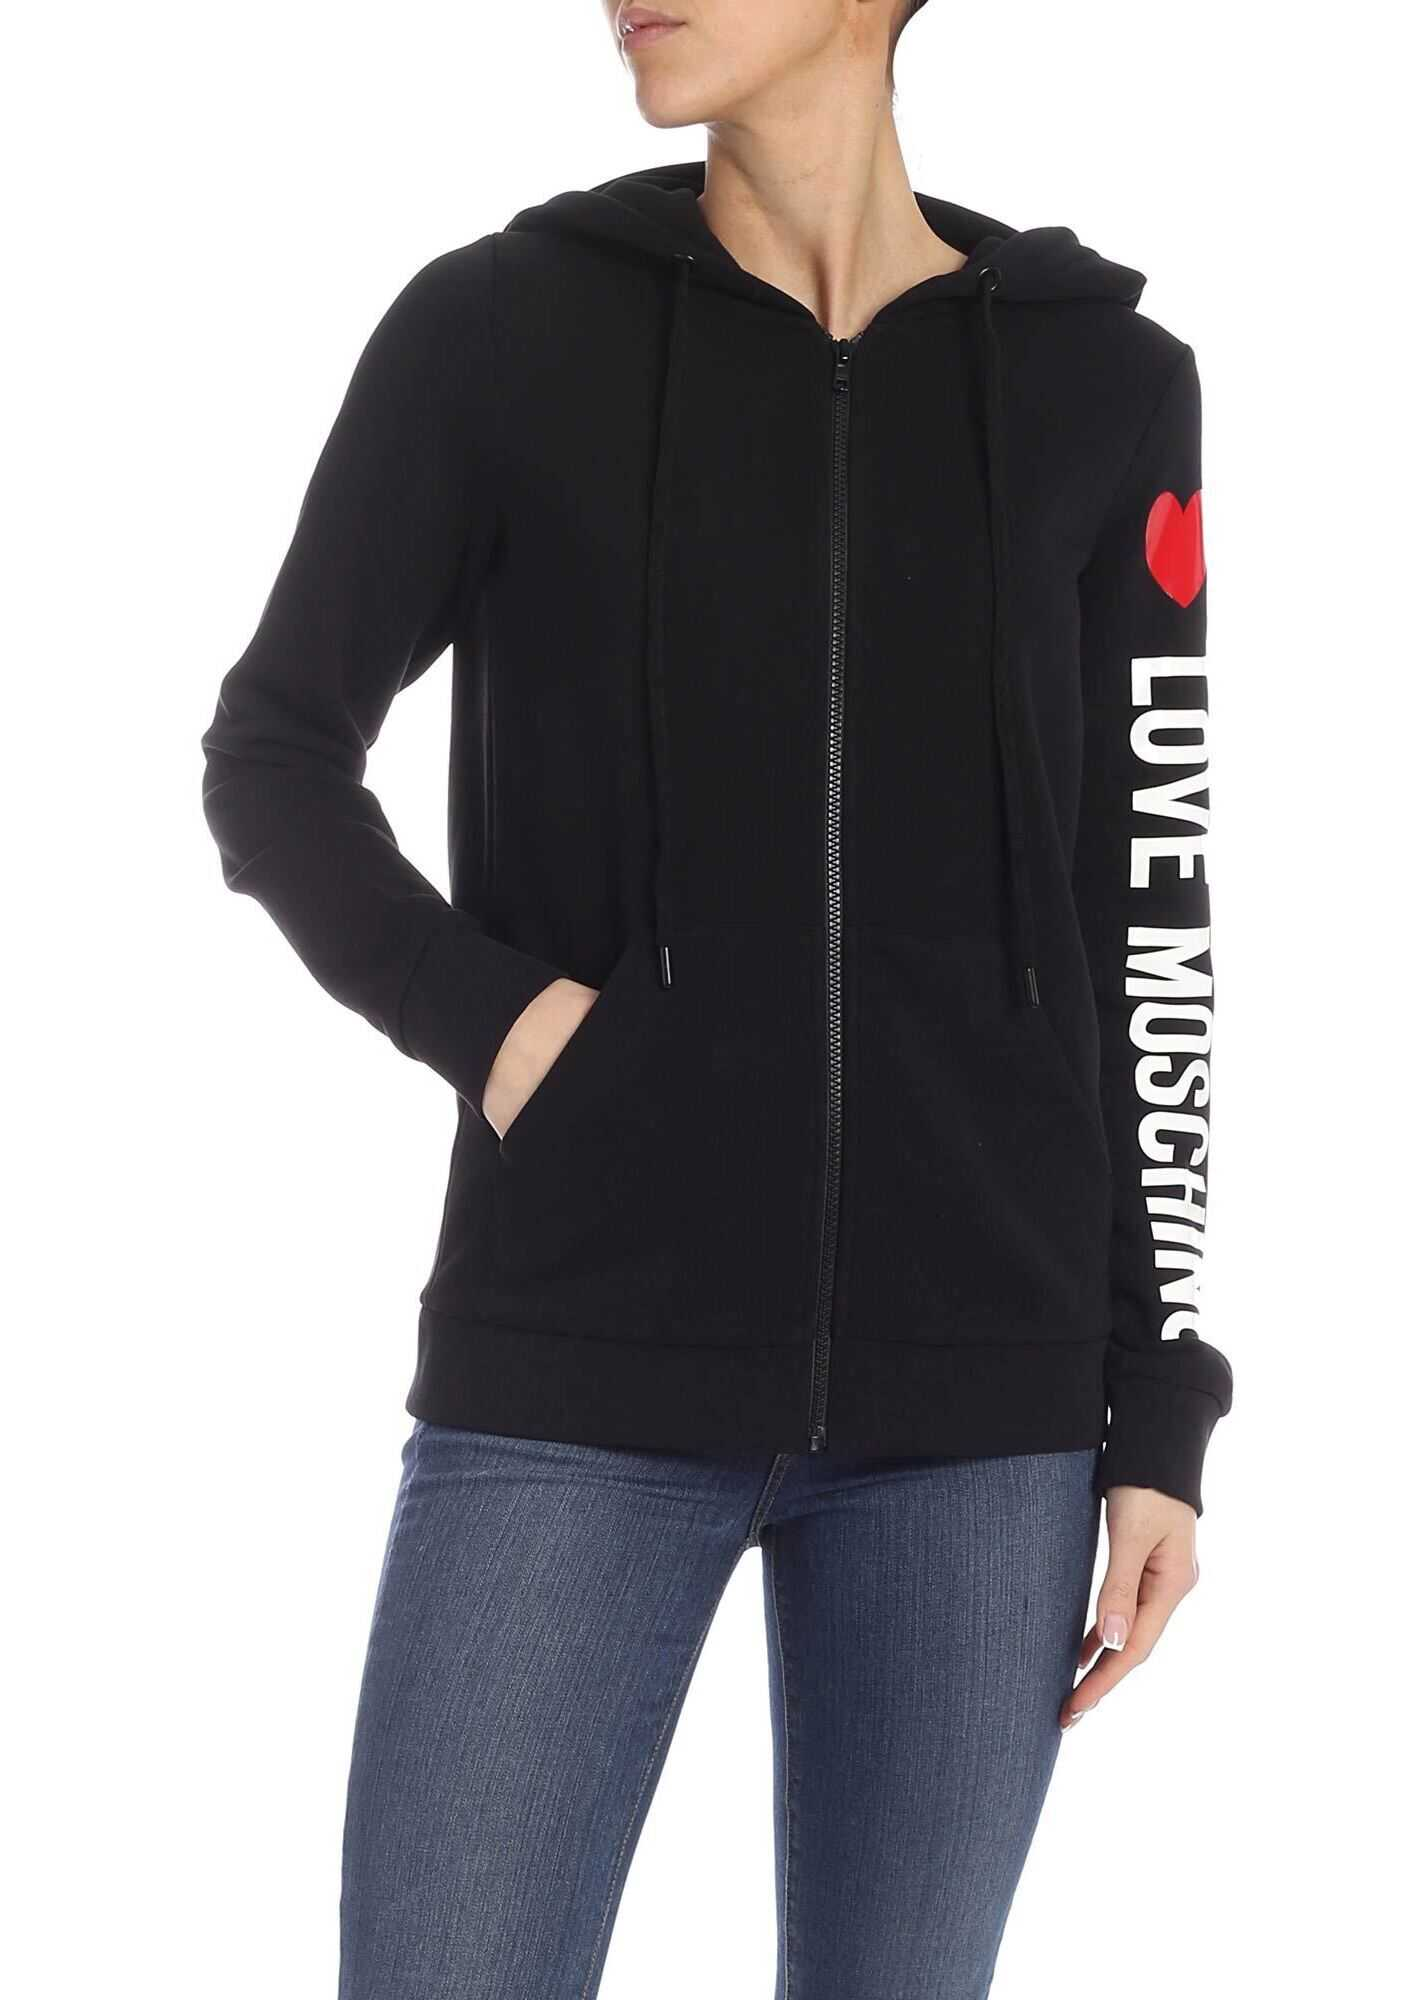 LOVE Moschino Sweatshirt In Black With Logo On The Sleeve Black